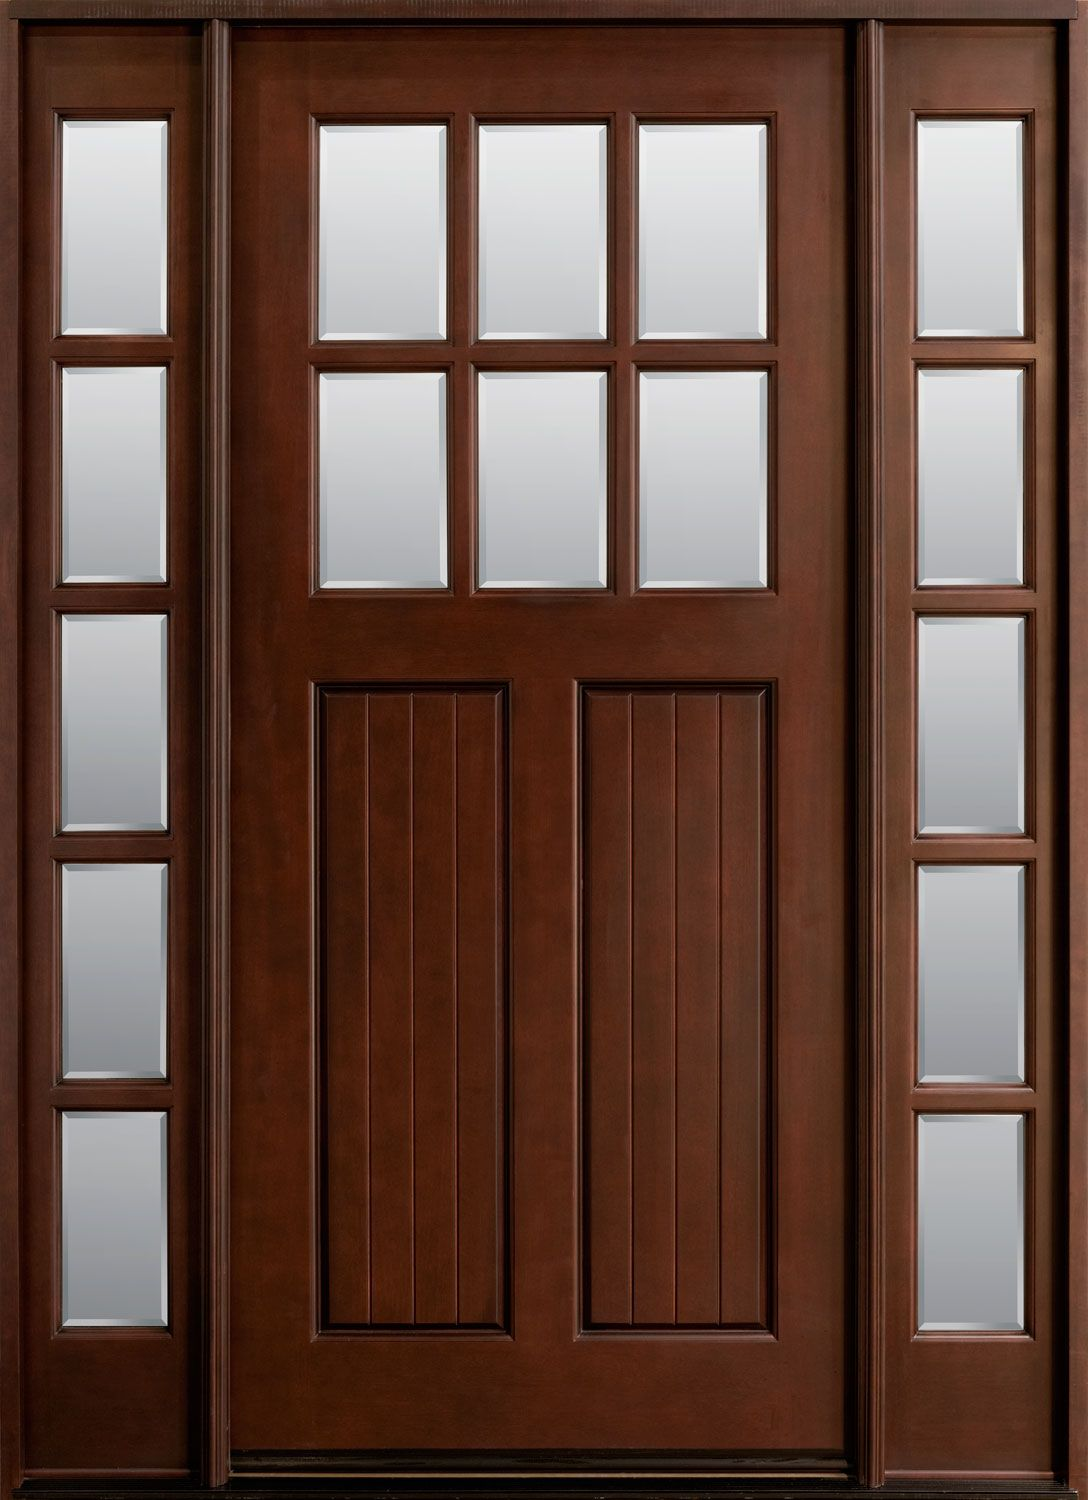 Solid wood entry and interior doors door pinterest for Wood front entry doors